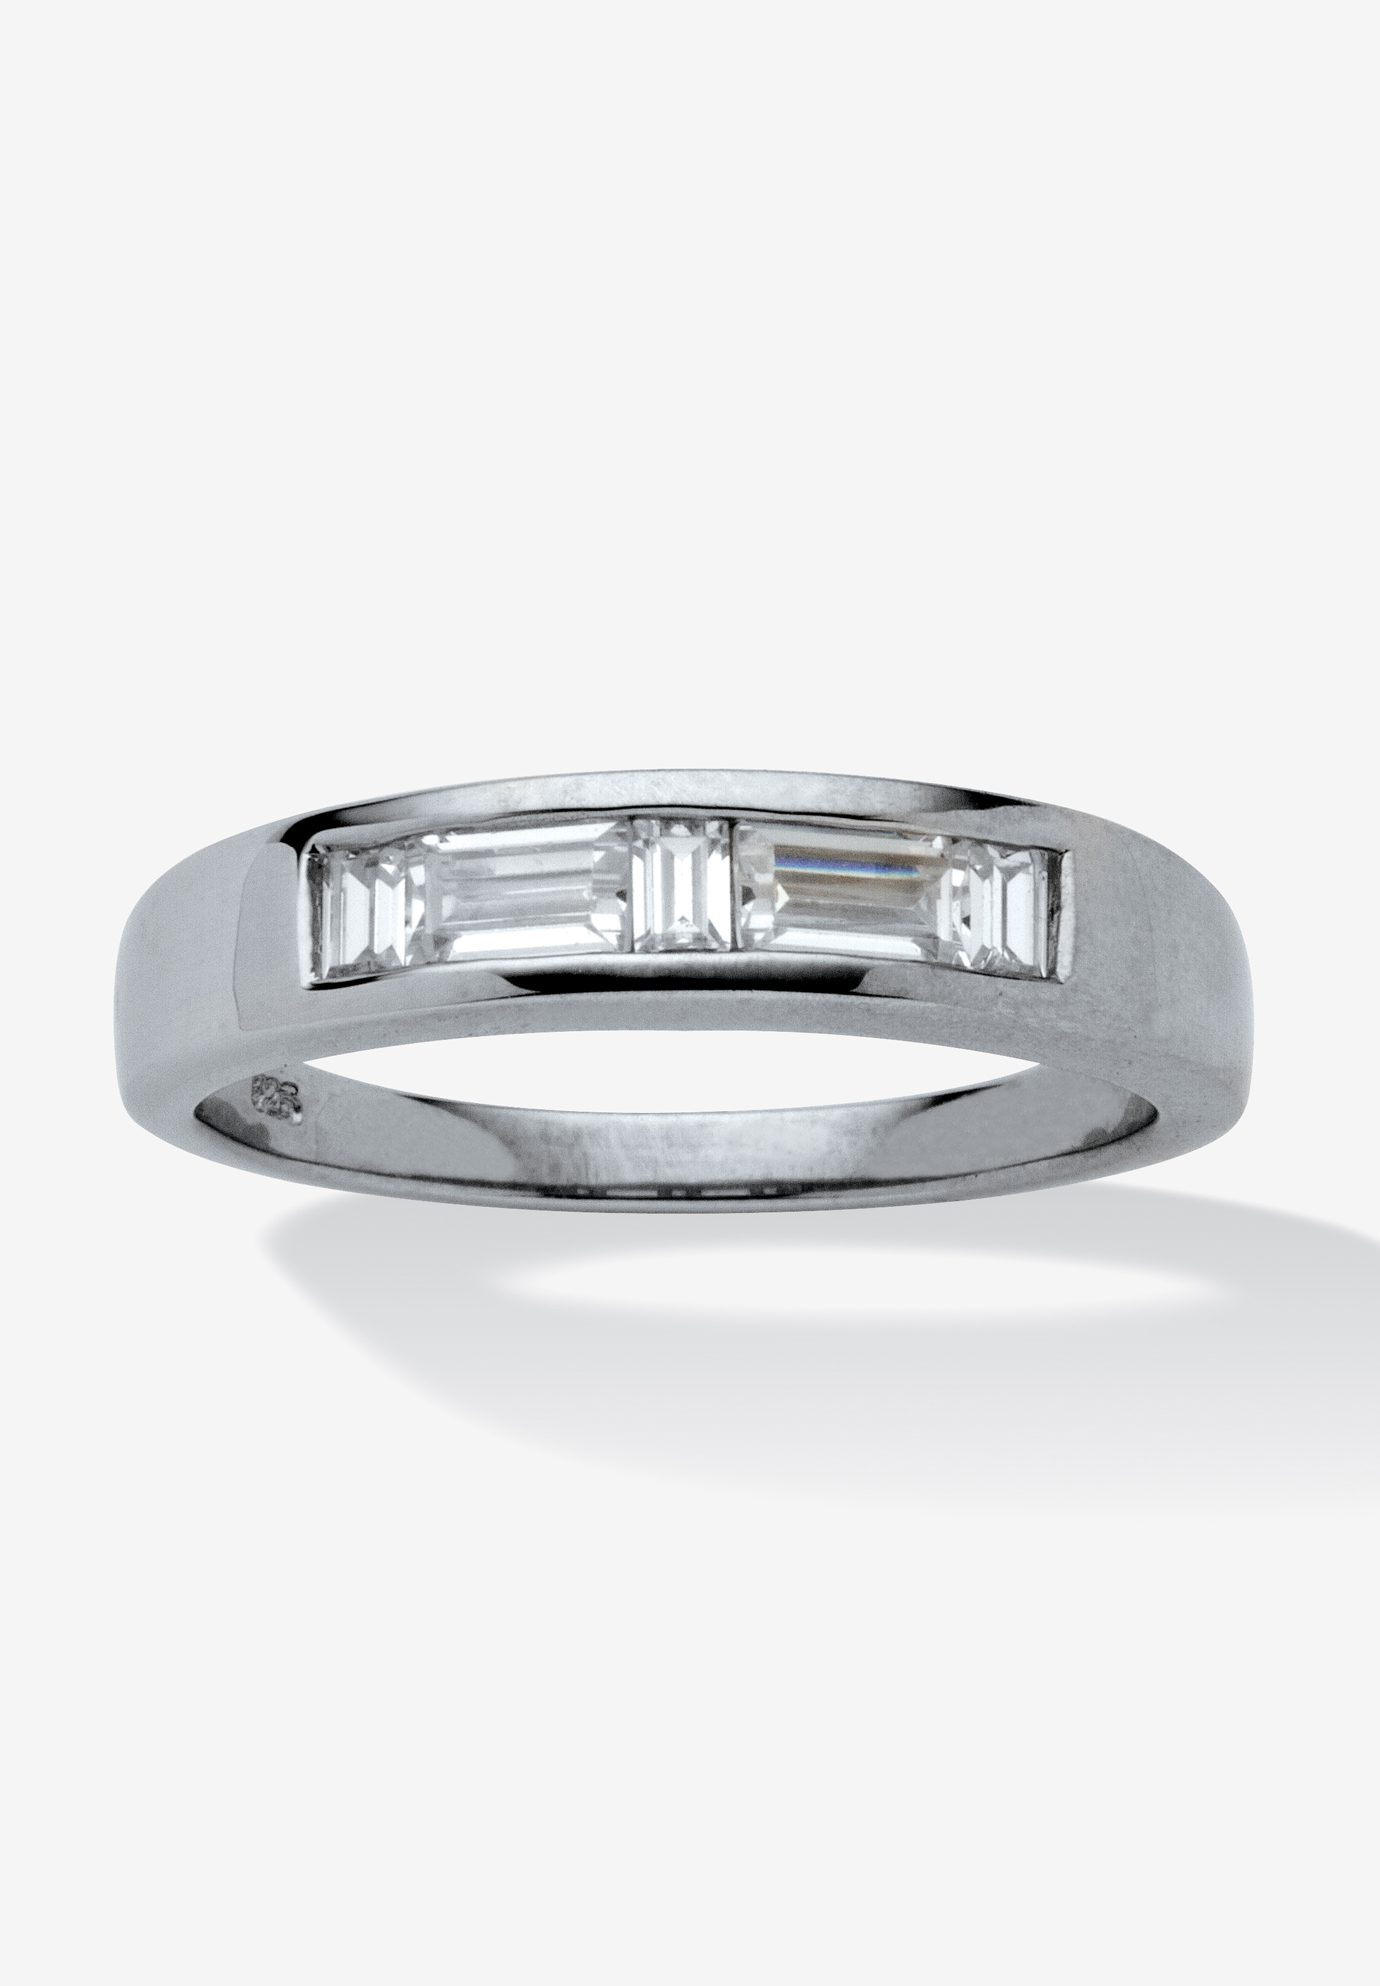 Platinum over Silver Baguette Wedding Band Ring Cubic Zirconia,